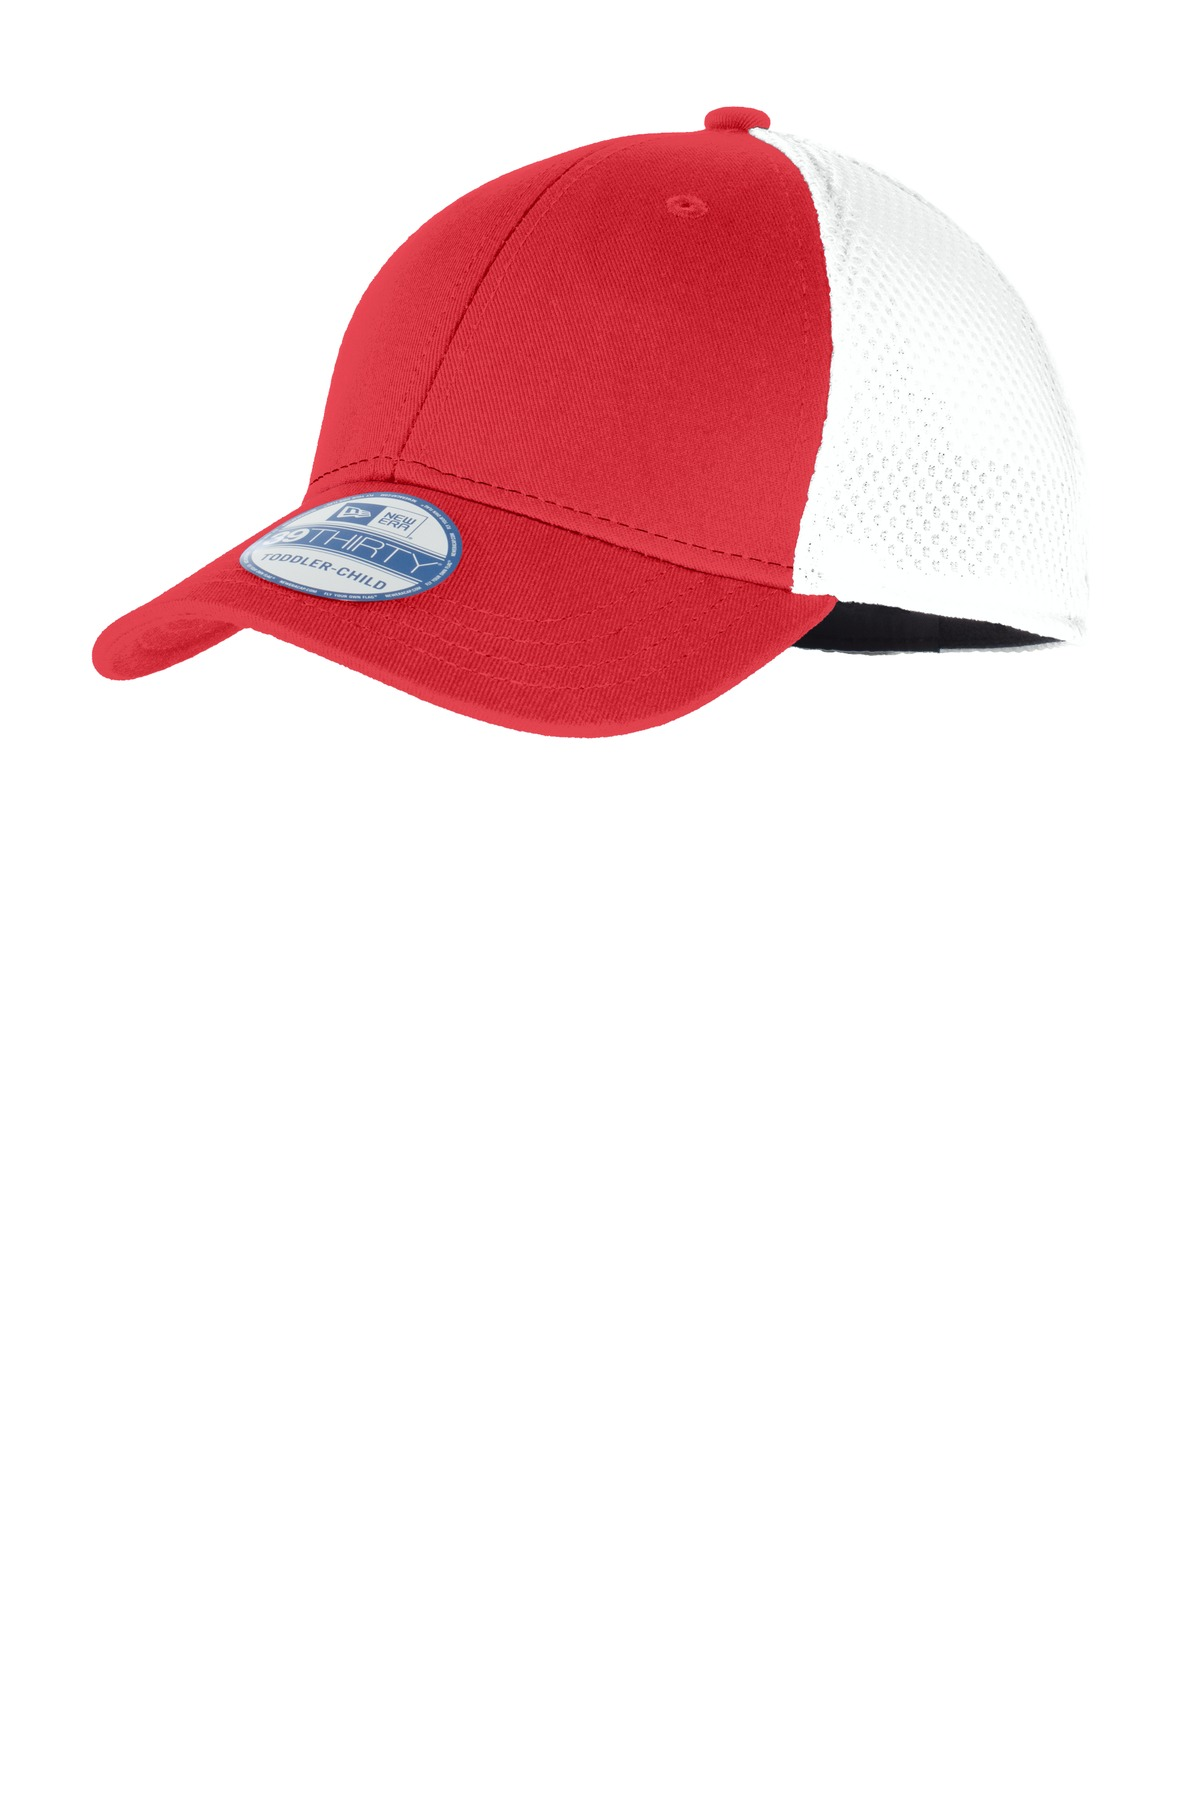 New Era ®  Youth Stretch Mesh Cap. NE302 - Scarlet Red/White